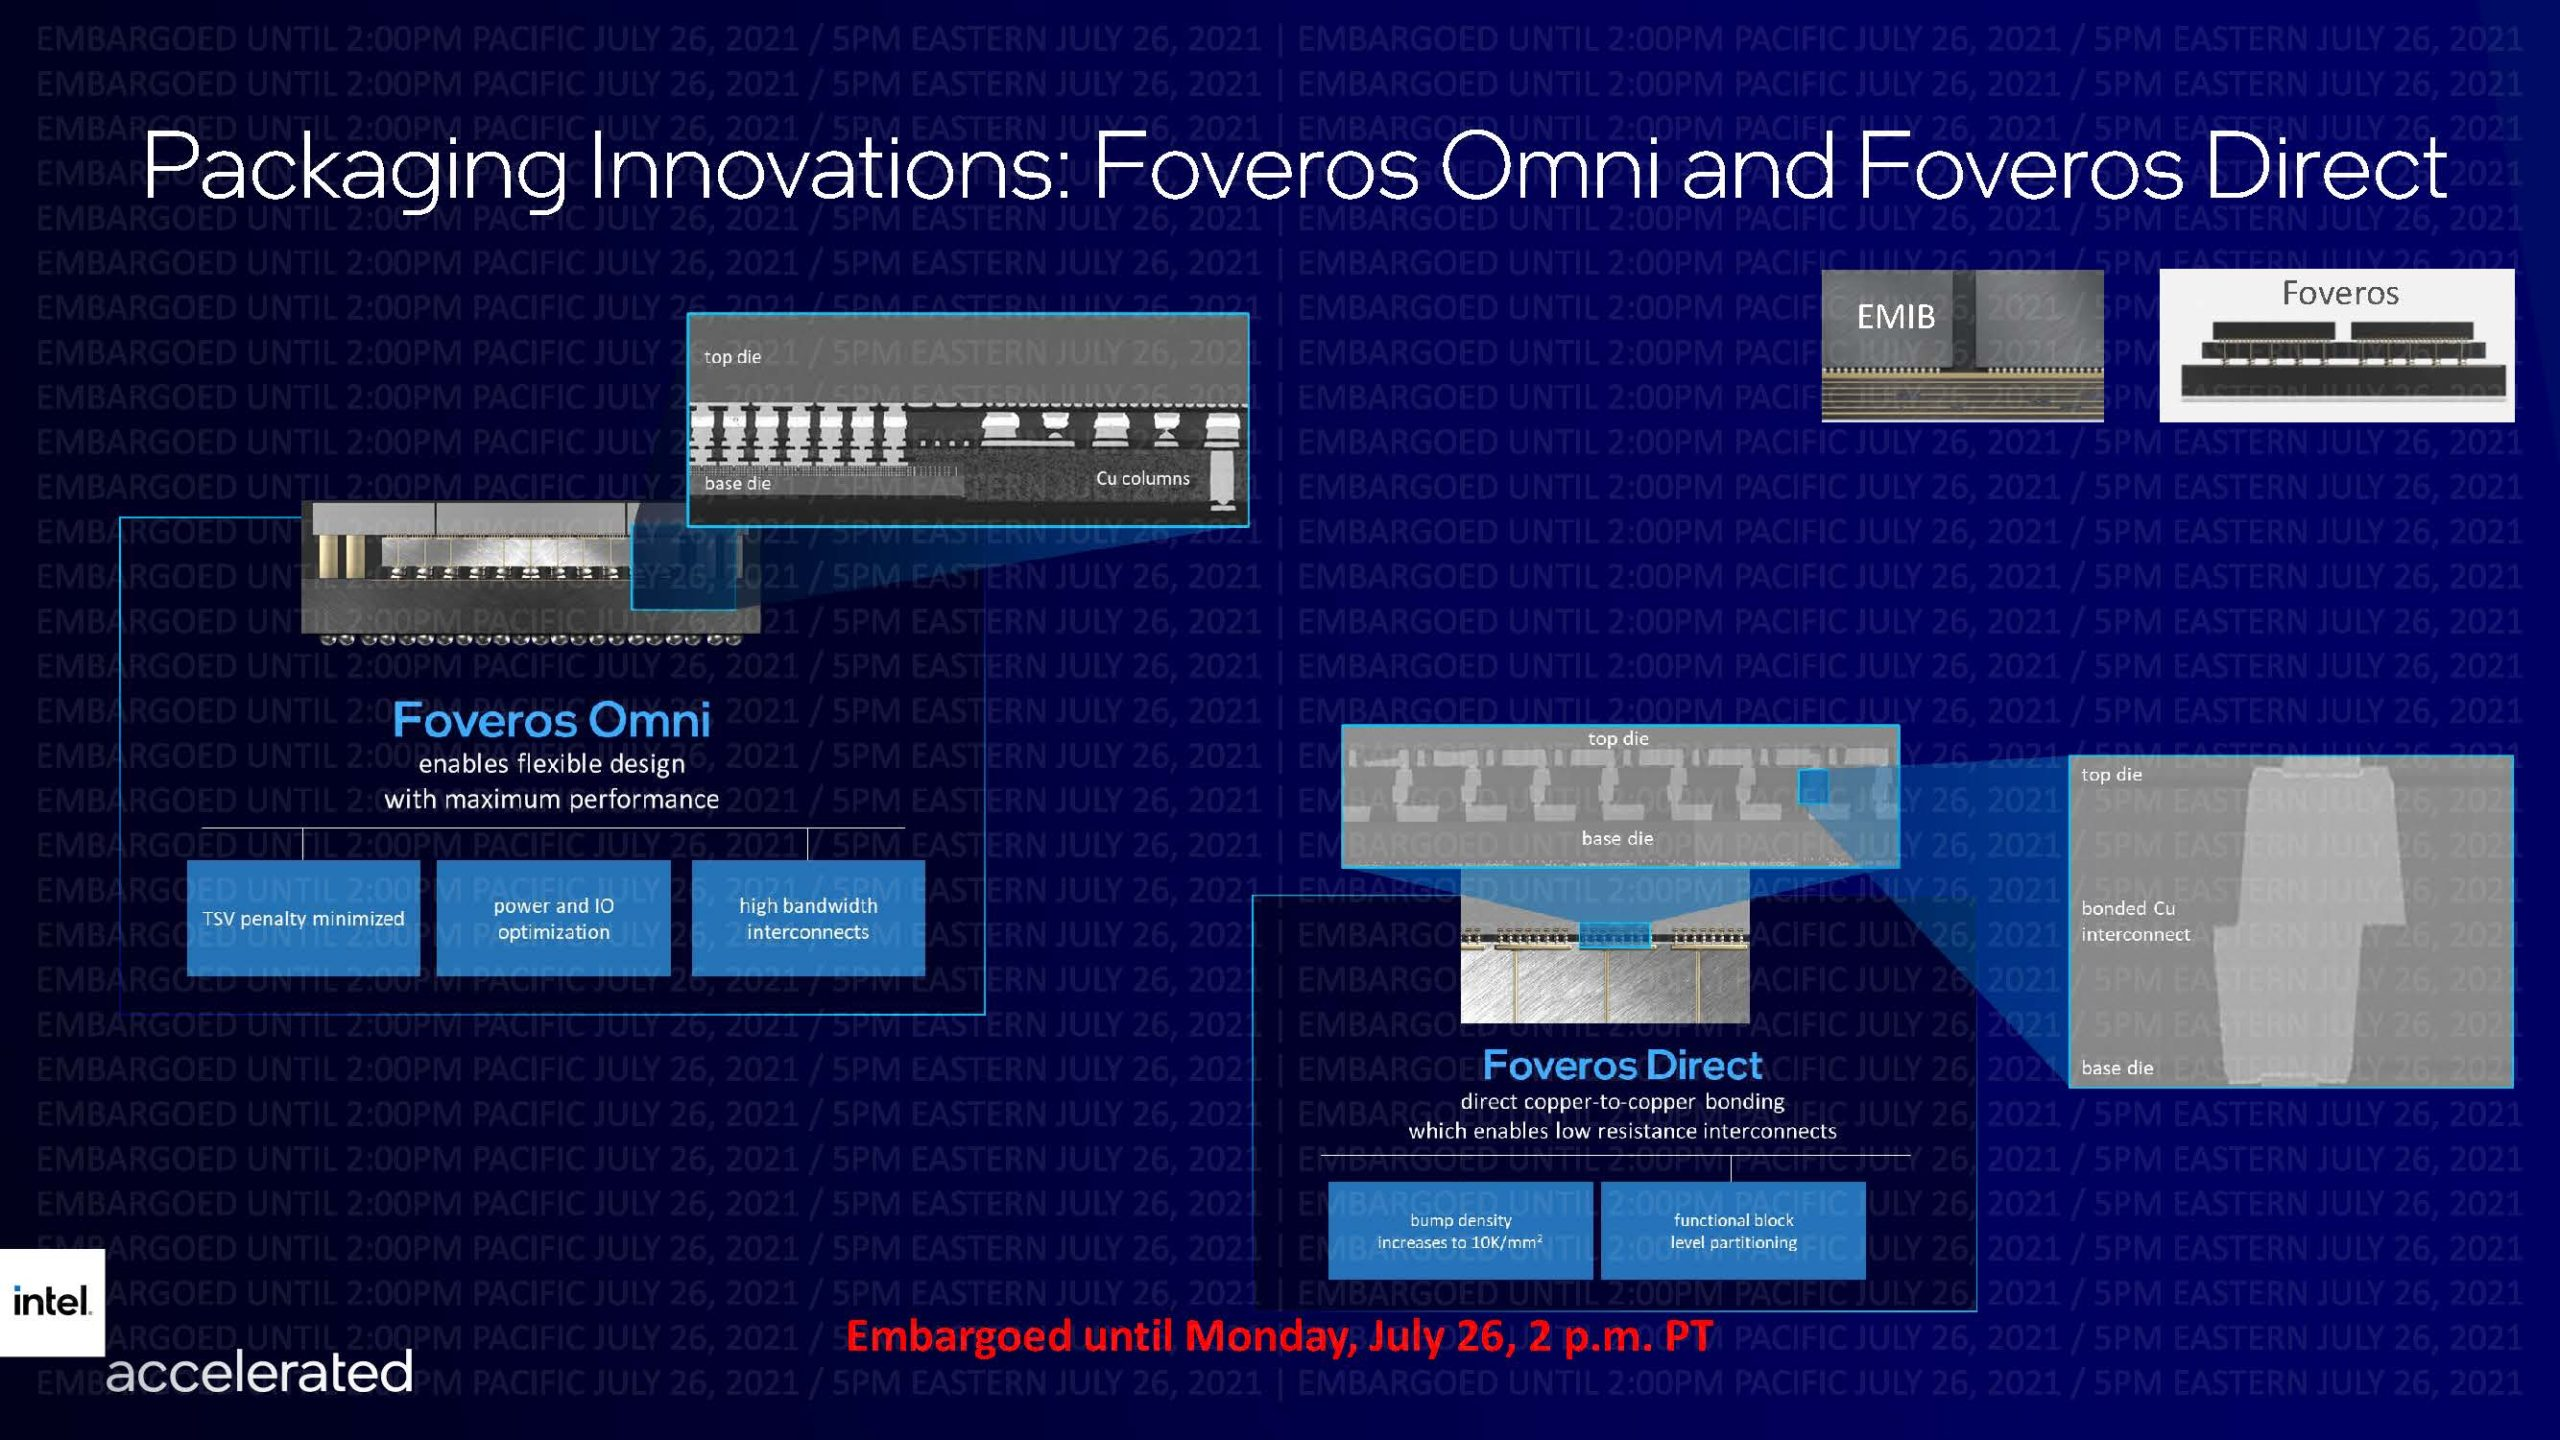 Intel Accelerated Packaging Innovations Foveros Omni And Foveros Direct